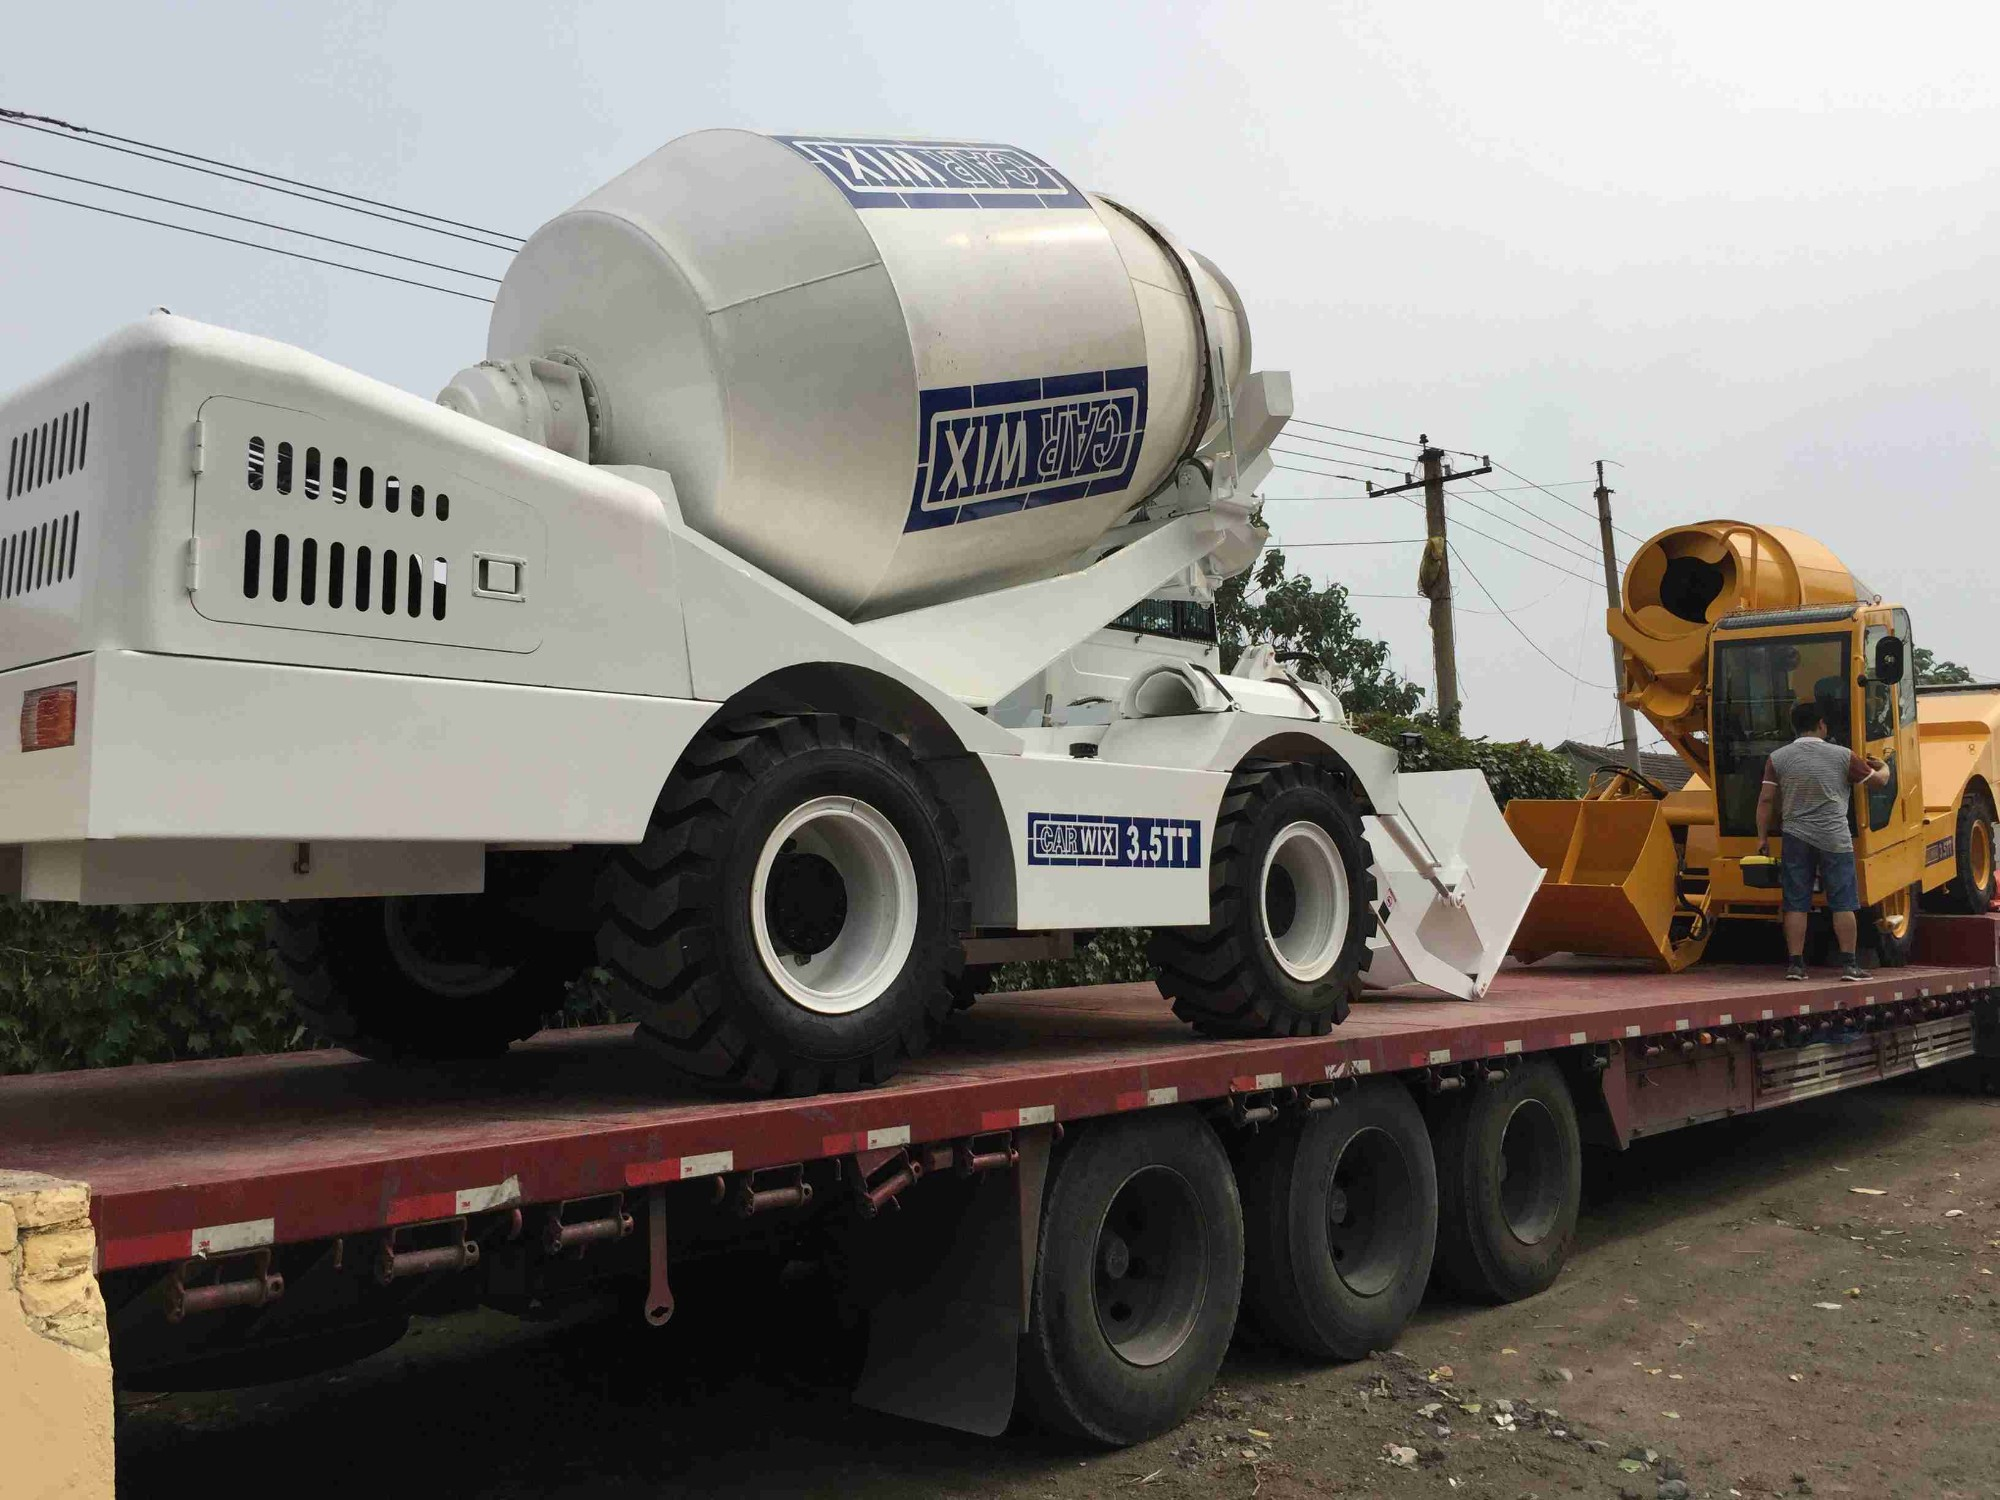 Sales Self Propelled Towable Concrete Mixer With 4m3 Mixing Capacity, Buy Self Propelled Towable Concrete Mixer With 4m3 Mixing Capacity, Self Propelled Towable Concrete Mixer With 4m3 Mixing Capacity Factory, Self Propelled Towable Concrete Mixer With 4m3 Mixing Capacity Brands